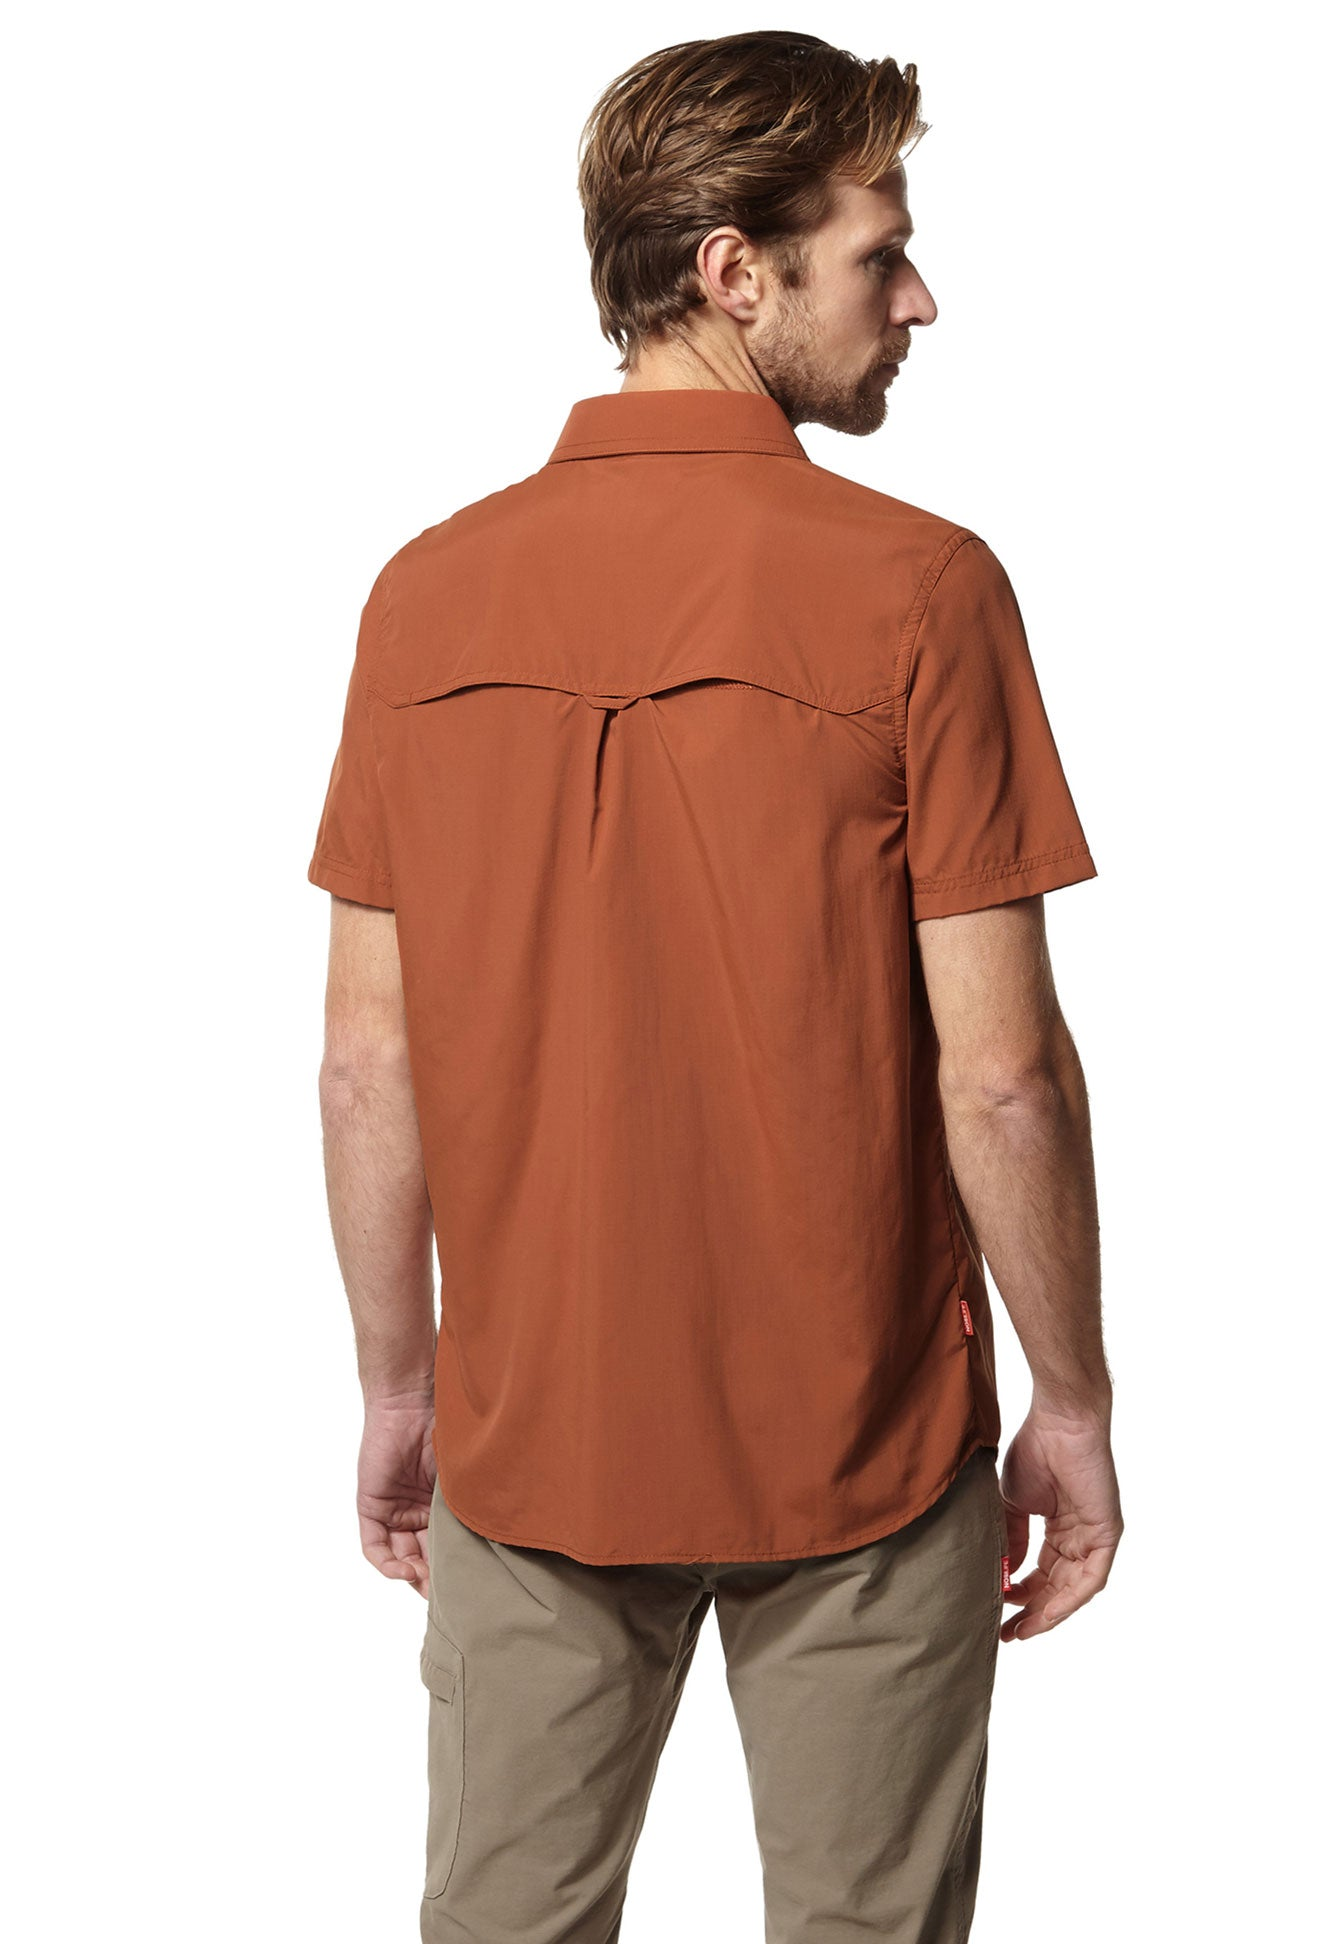 rear view Burnt whiskey Craghoppers NosiLife Adventure Shirt II Short Sleeved